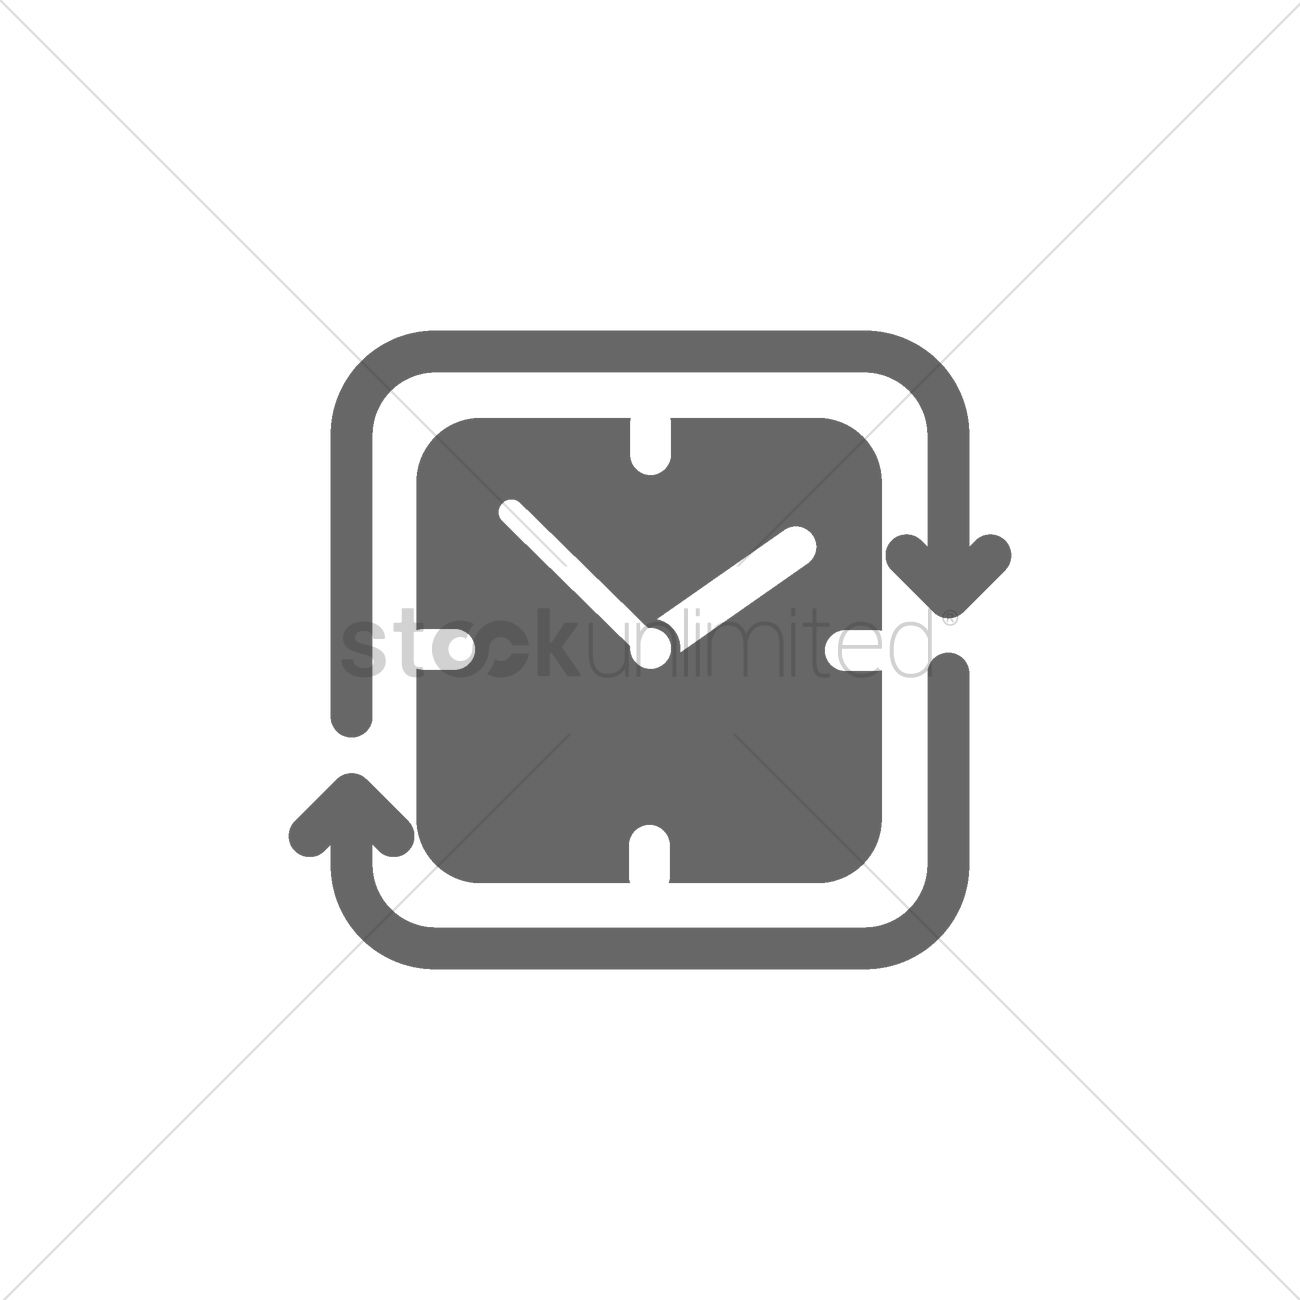 Clock with arrow clipart jpg royalty free stock Clock with arrow Vector Image - 2002536   StockUnlimited jpg royalty free stock